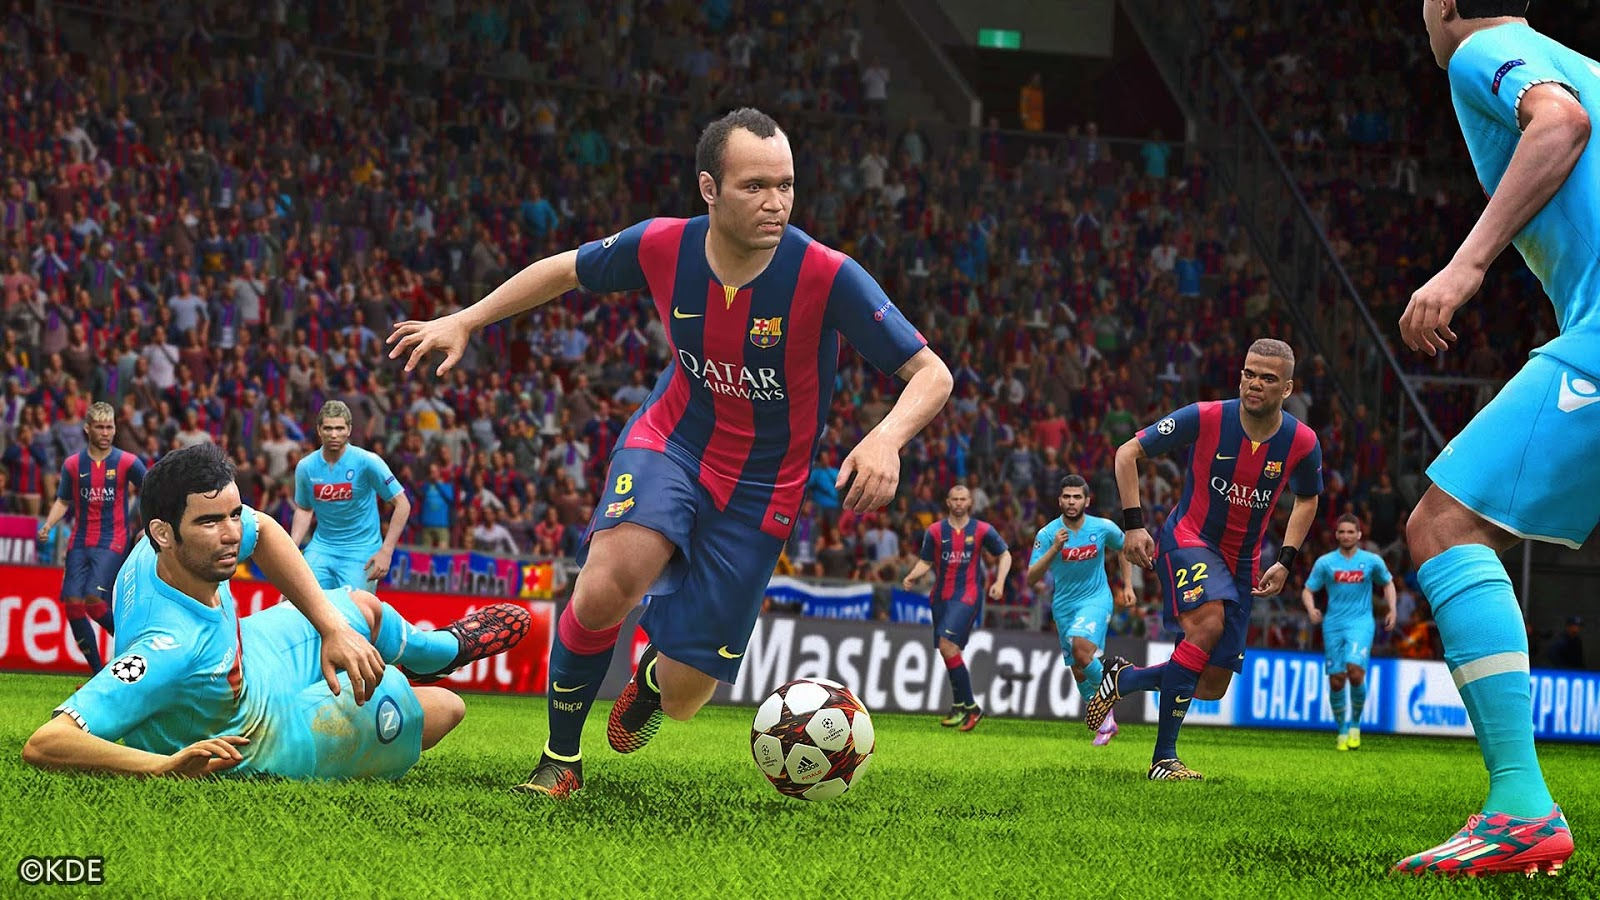 Download Pro Evolution Soccer (PES) 2015 Full Gratis